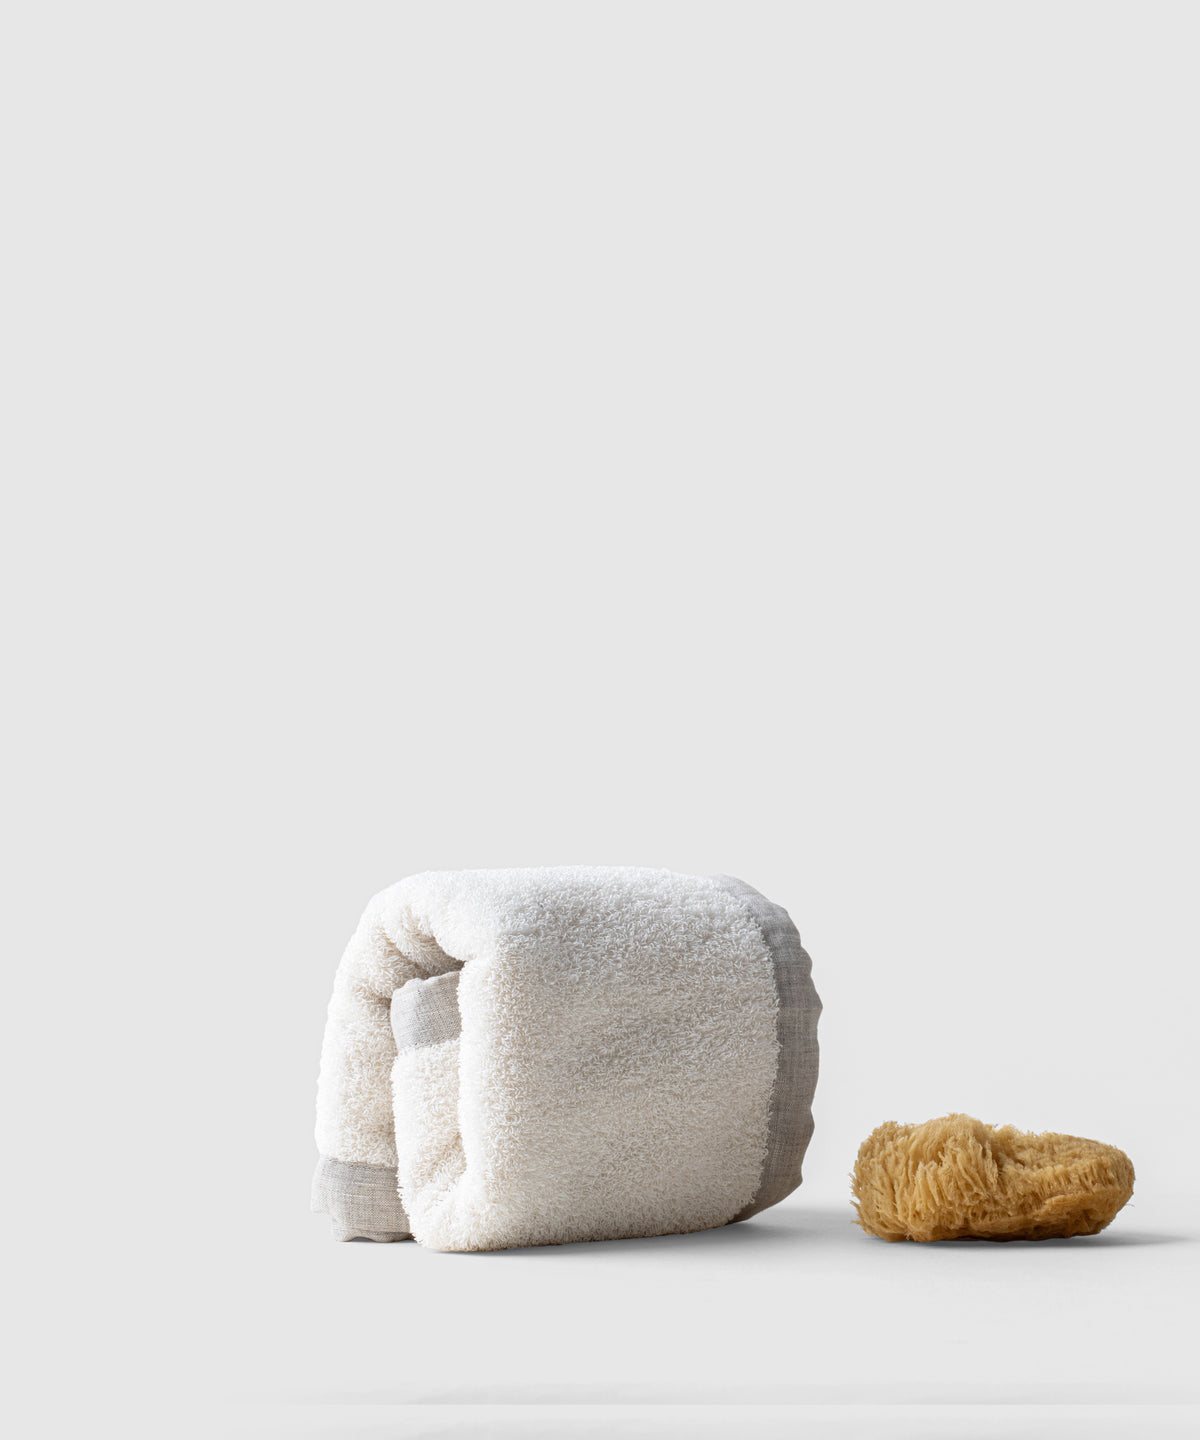 Pure Linen Pile Bath Mat: Naturally Antibacterial